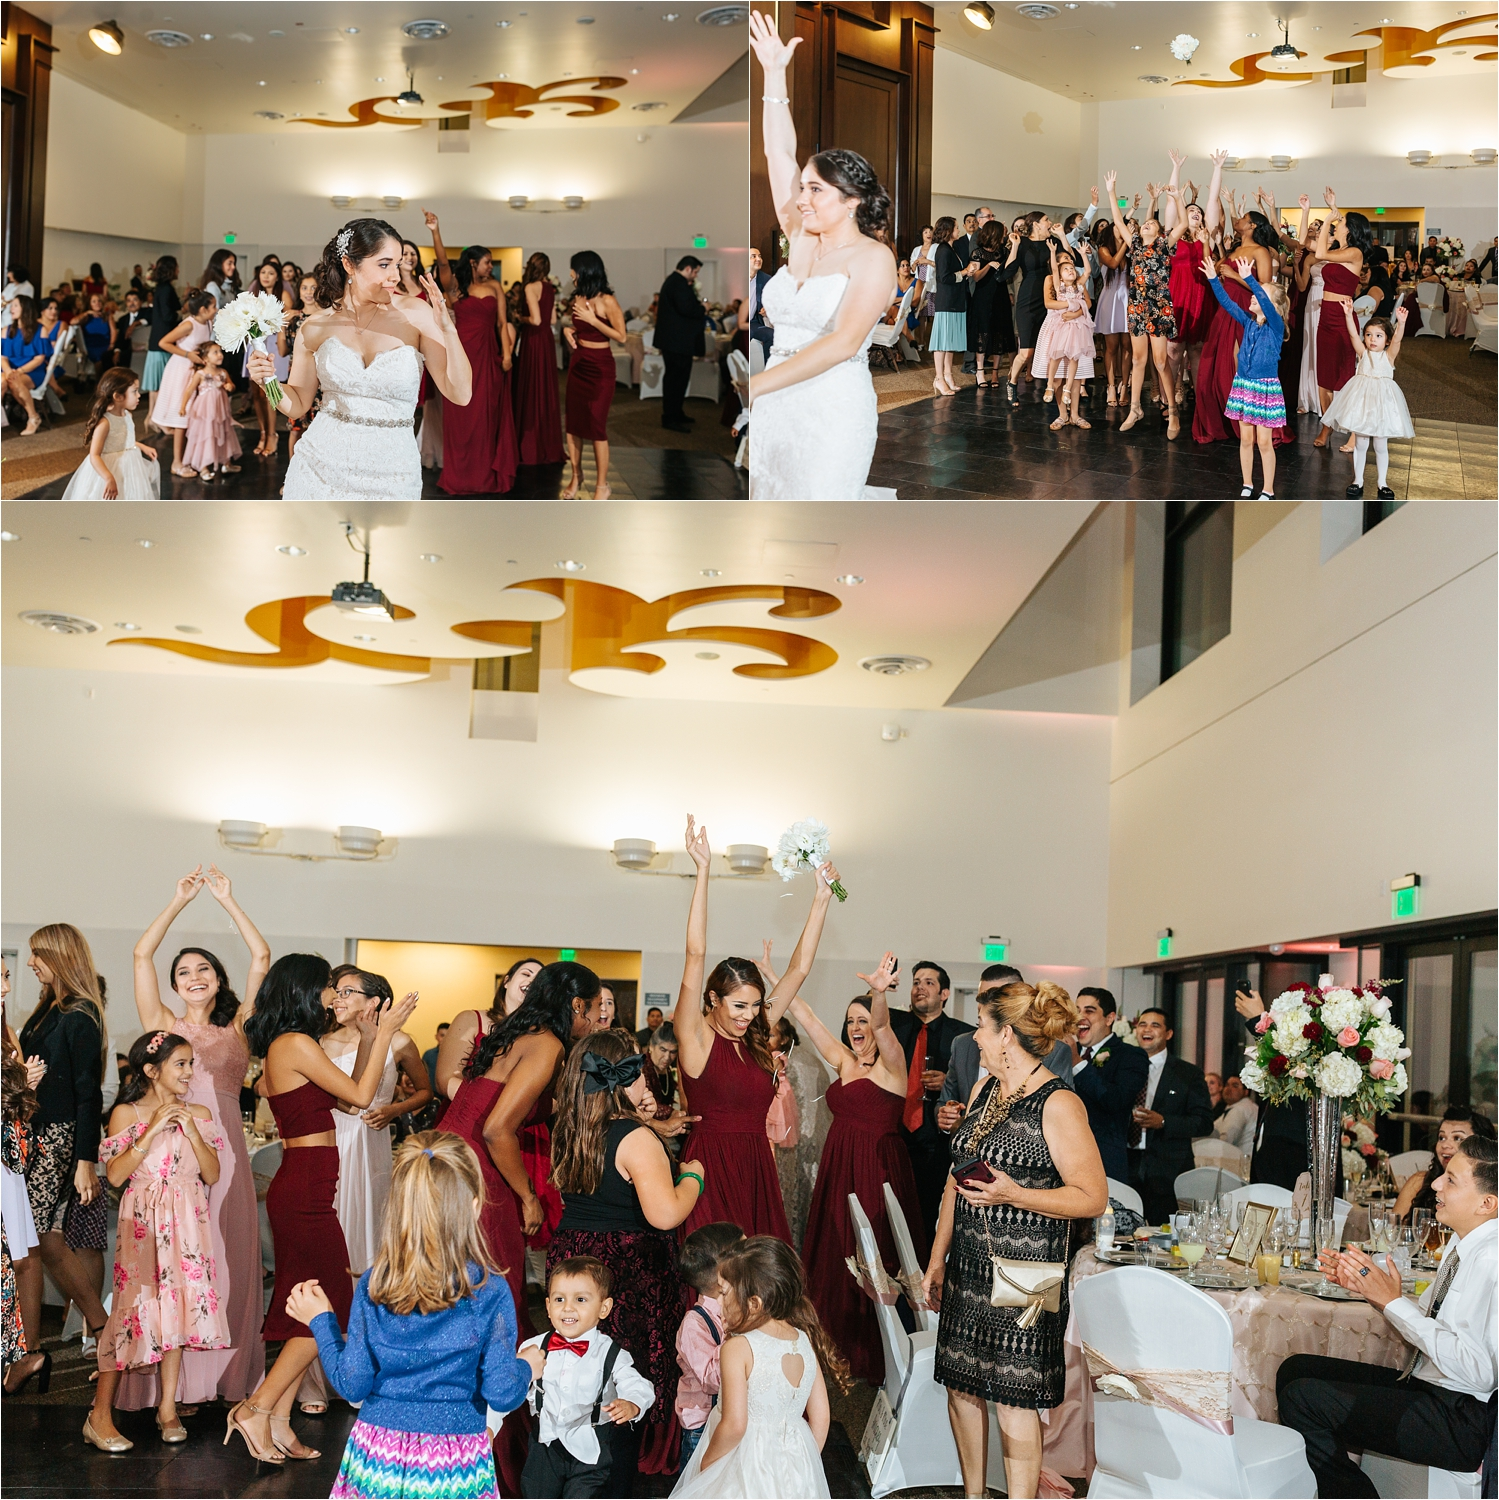 Bouquet Toss - Bride tosses the bouquet - https://brittneyhannonphotography.com